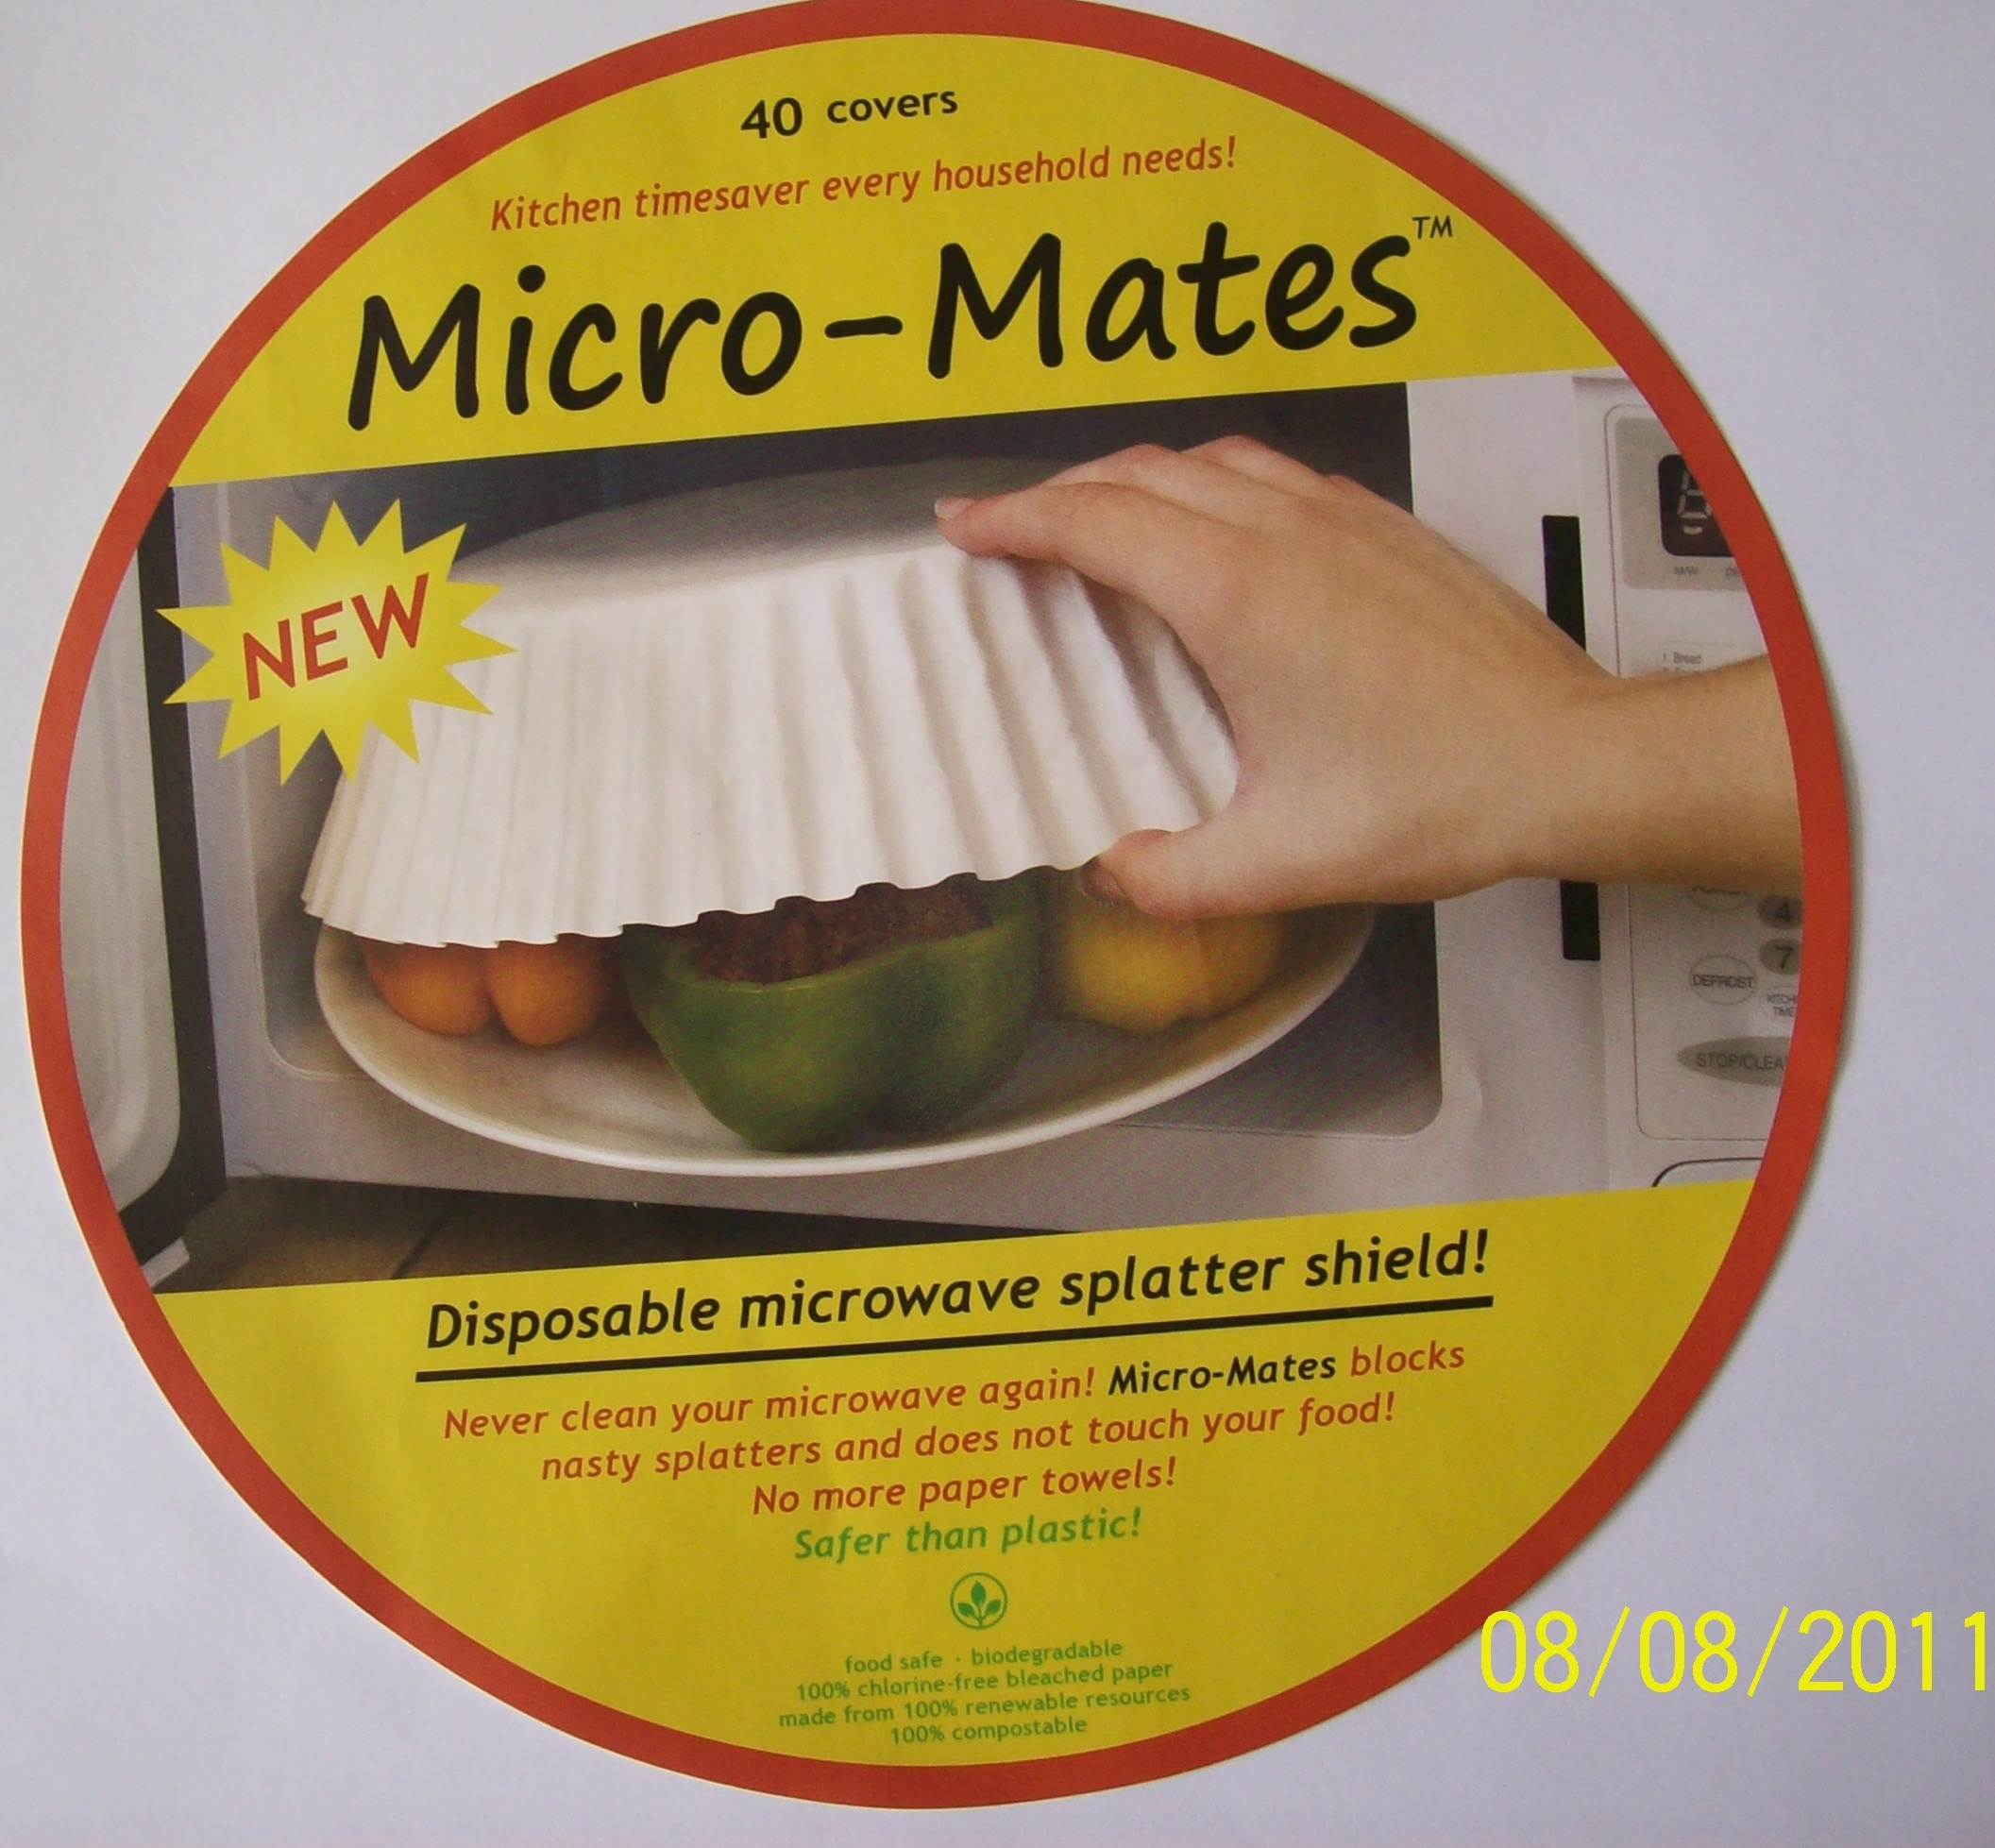 Microwave Food Covers Cancer Free By Mymicrowavefoodcovers Unique Fda Roved Cover Which We Ship World Wide